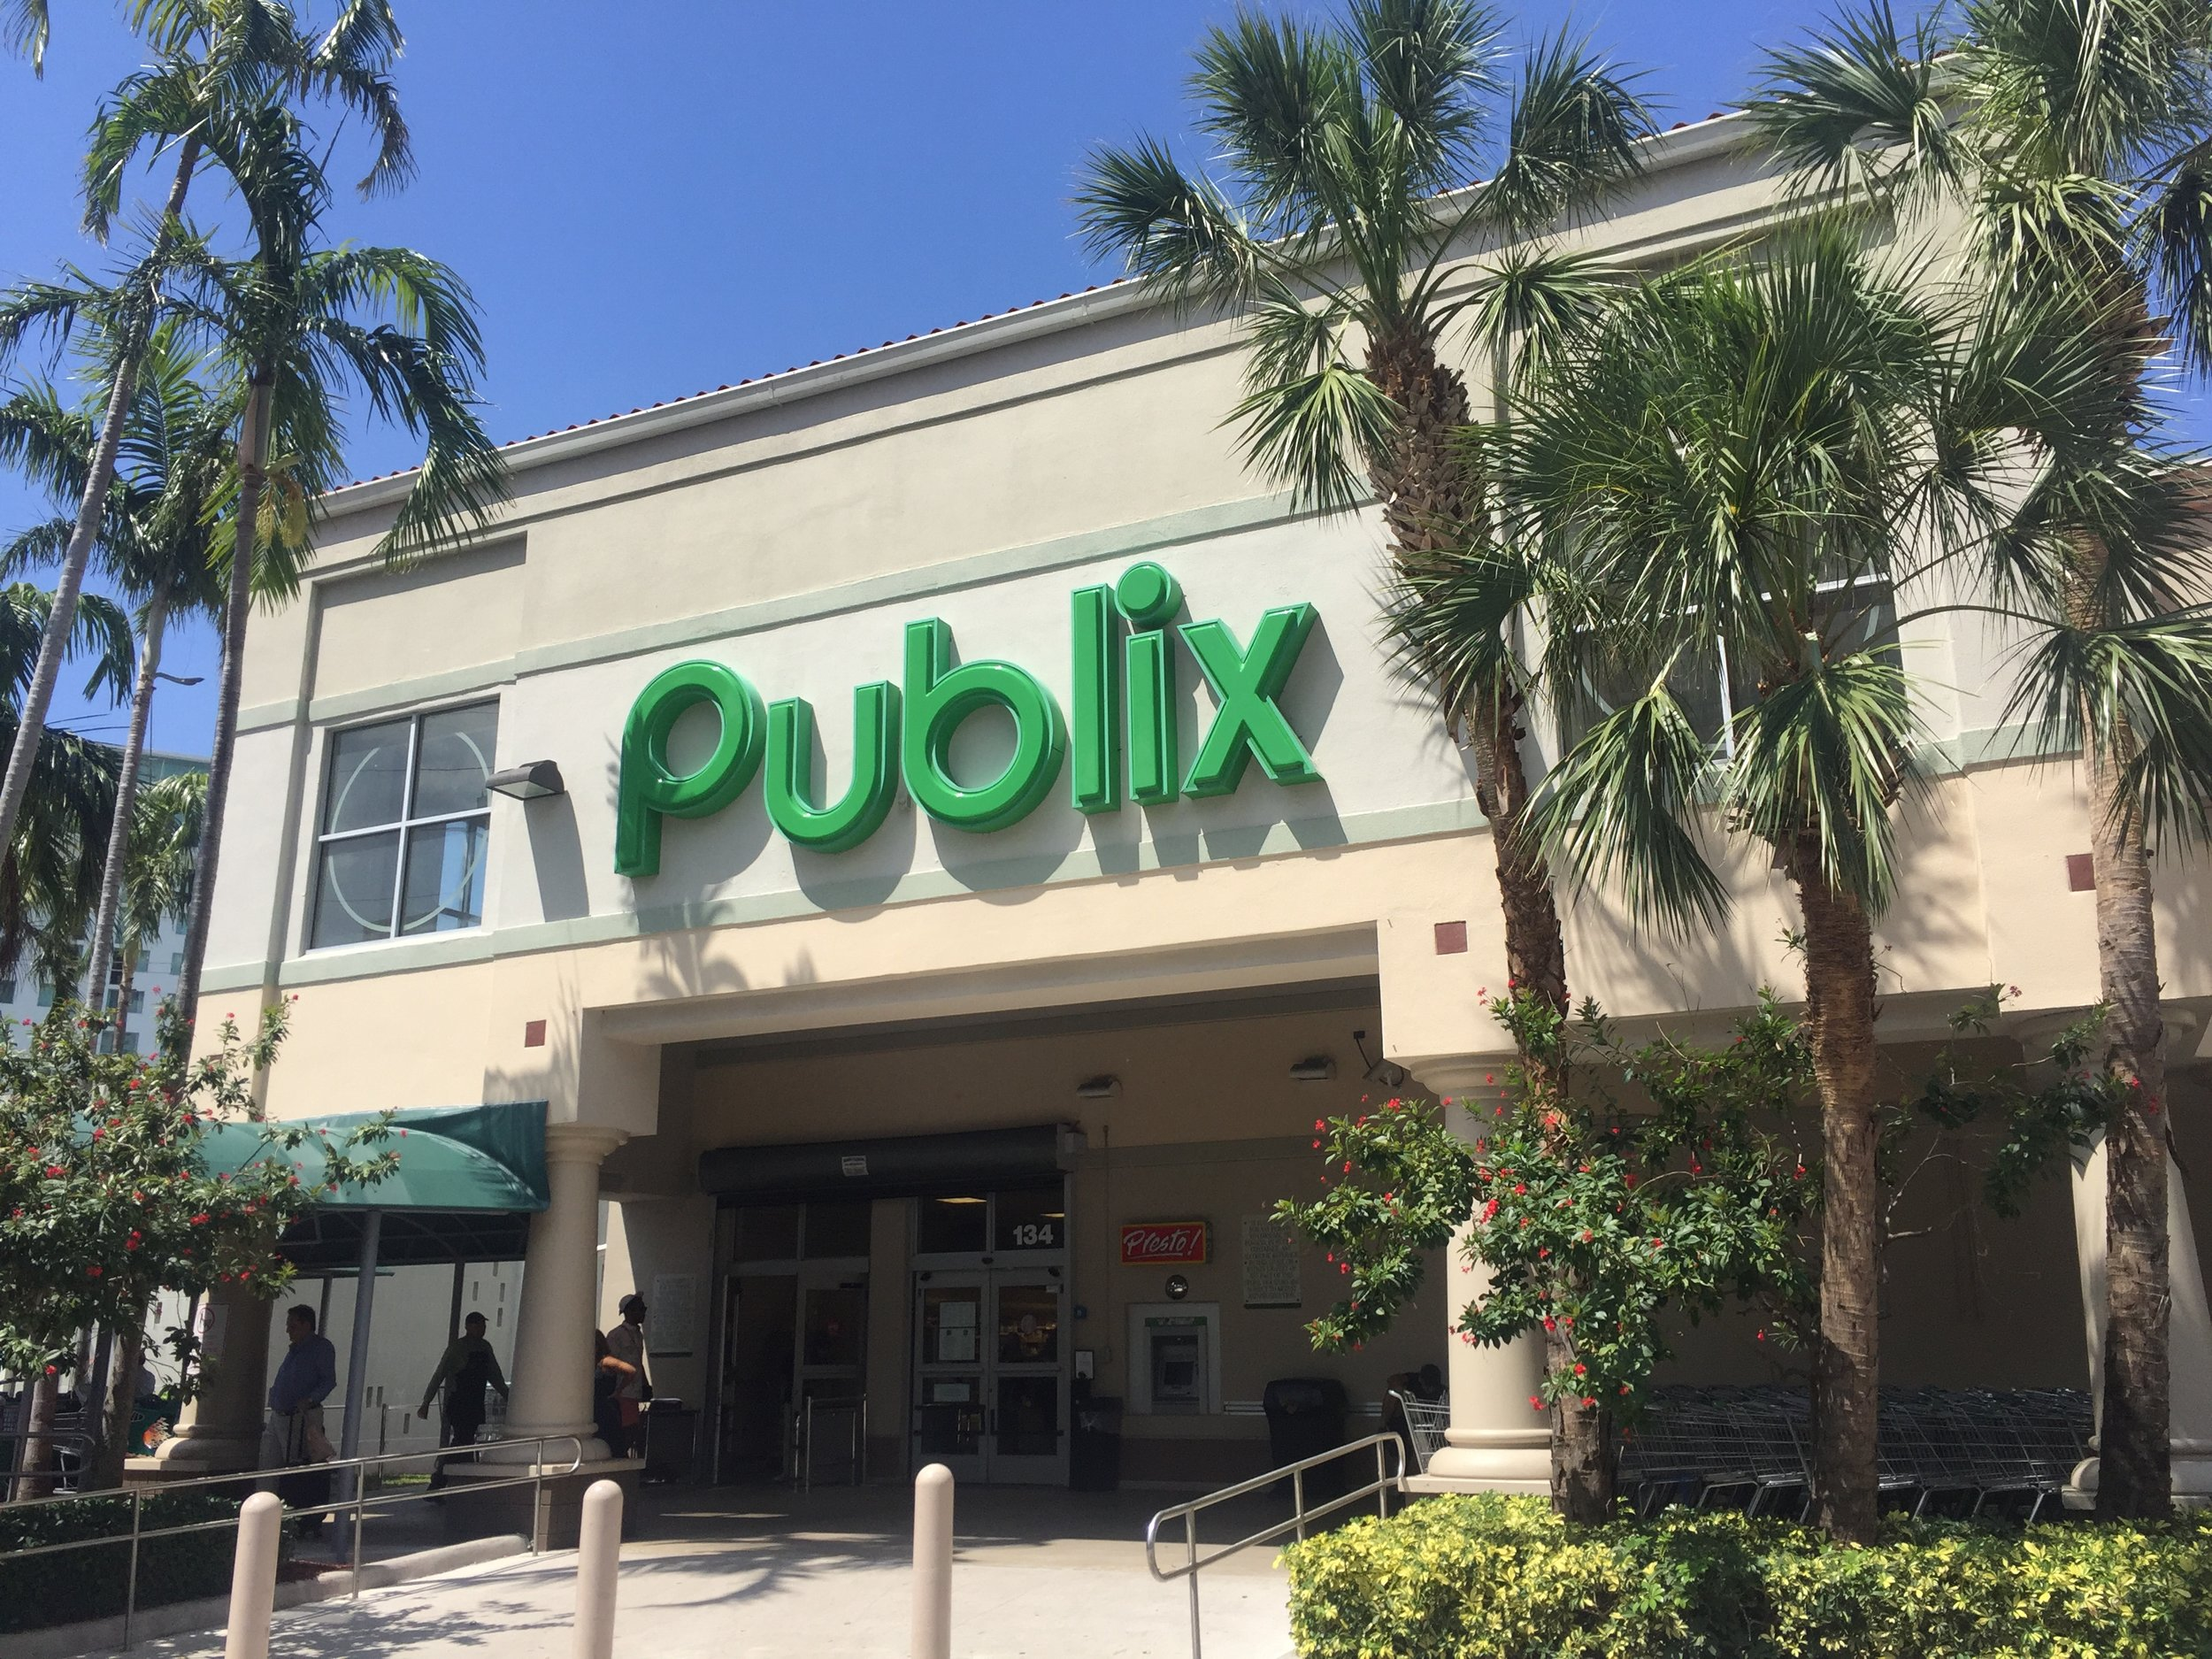 Publix in Miami, Florida